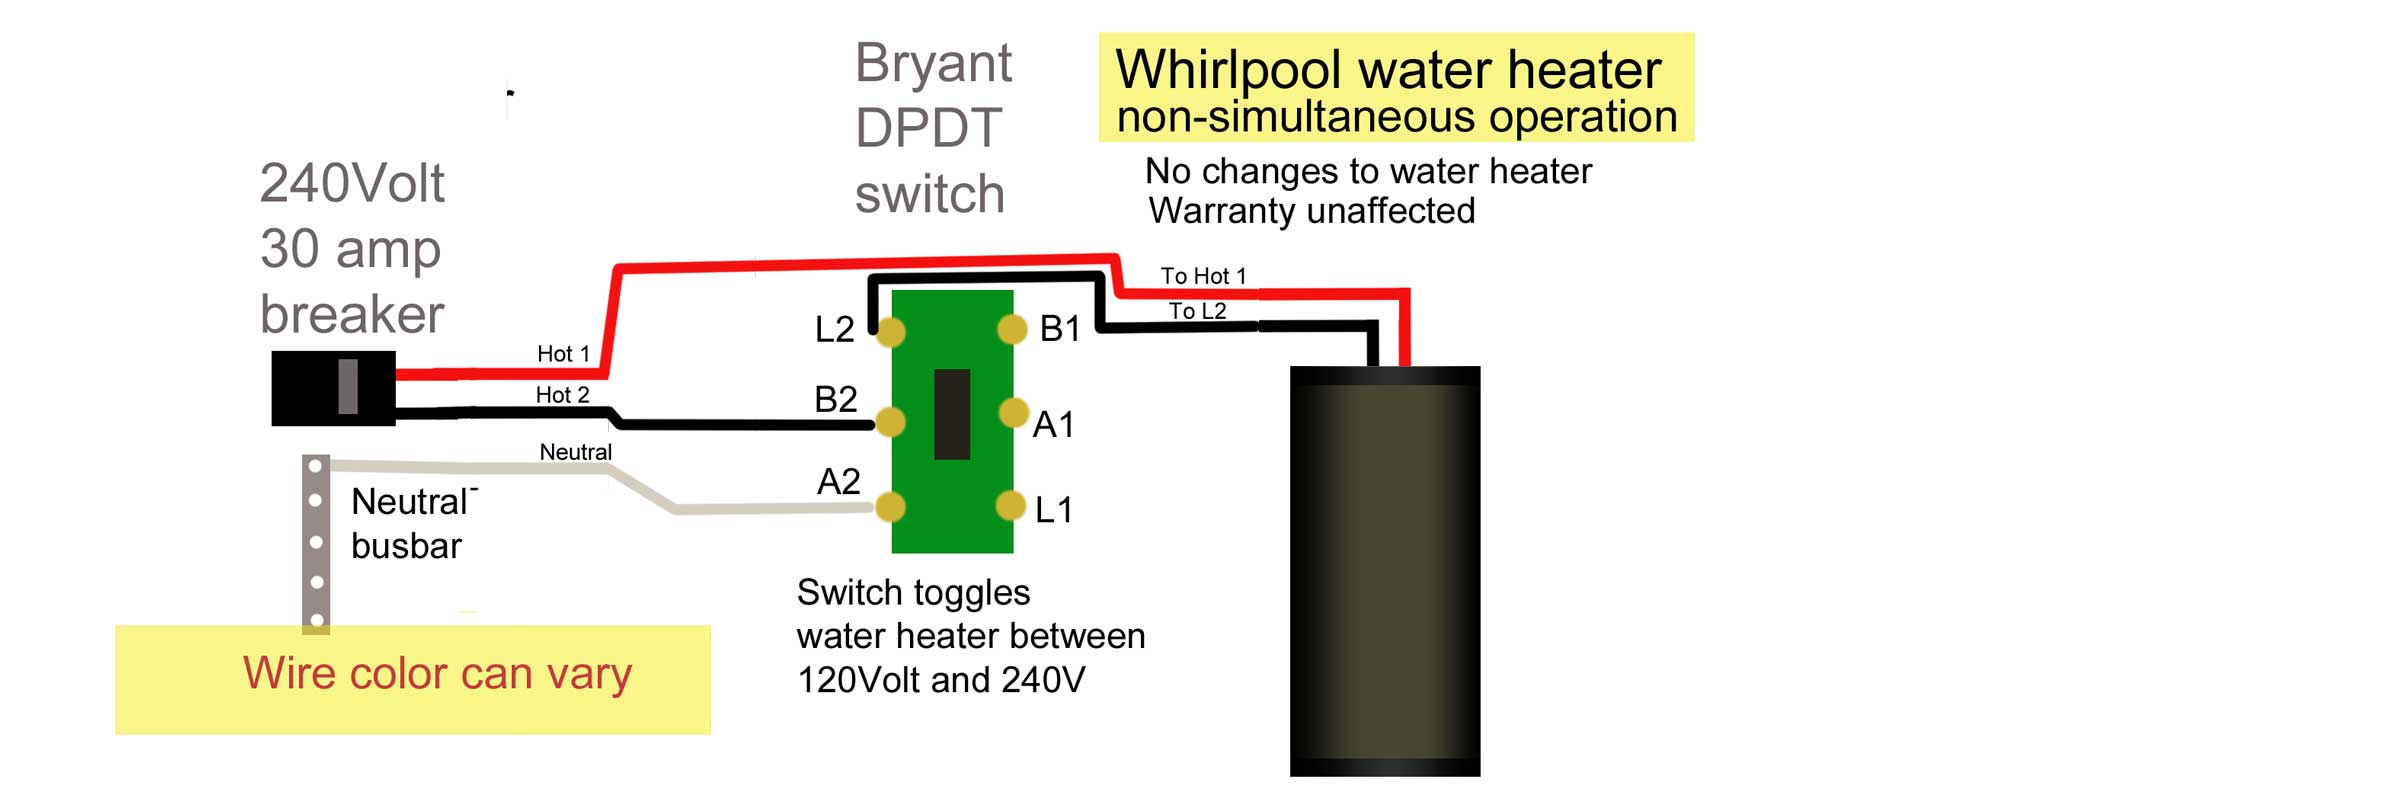 Bryant switch and water heater 800 wiring diagram for 240 volt hot water heater readingrat net 240 volt hot water heater wiring diagram at soozxer.org